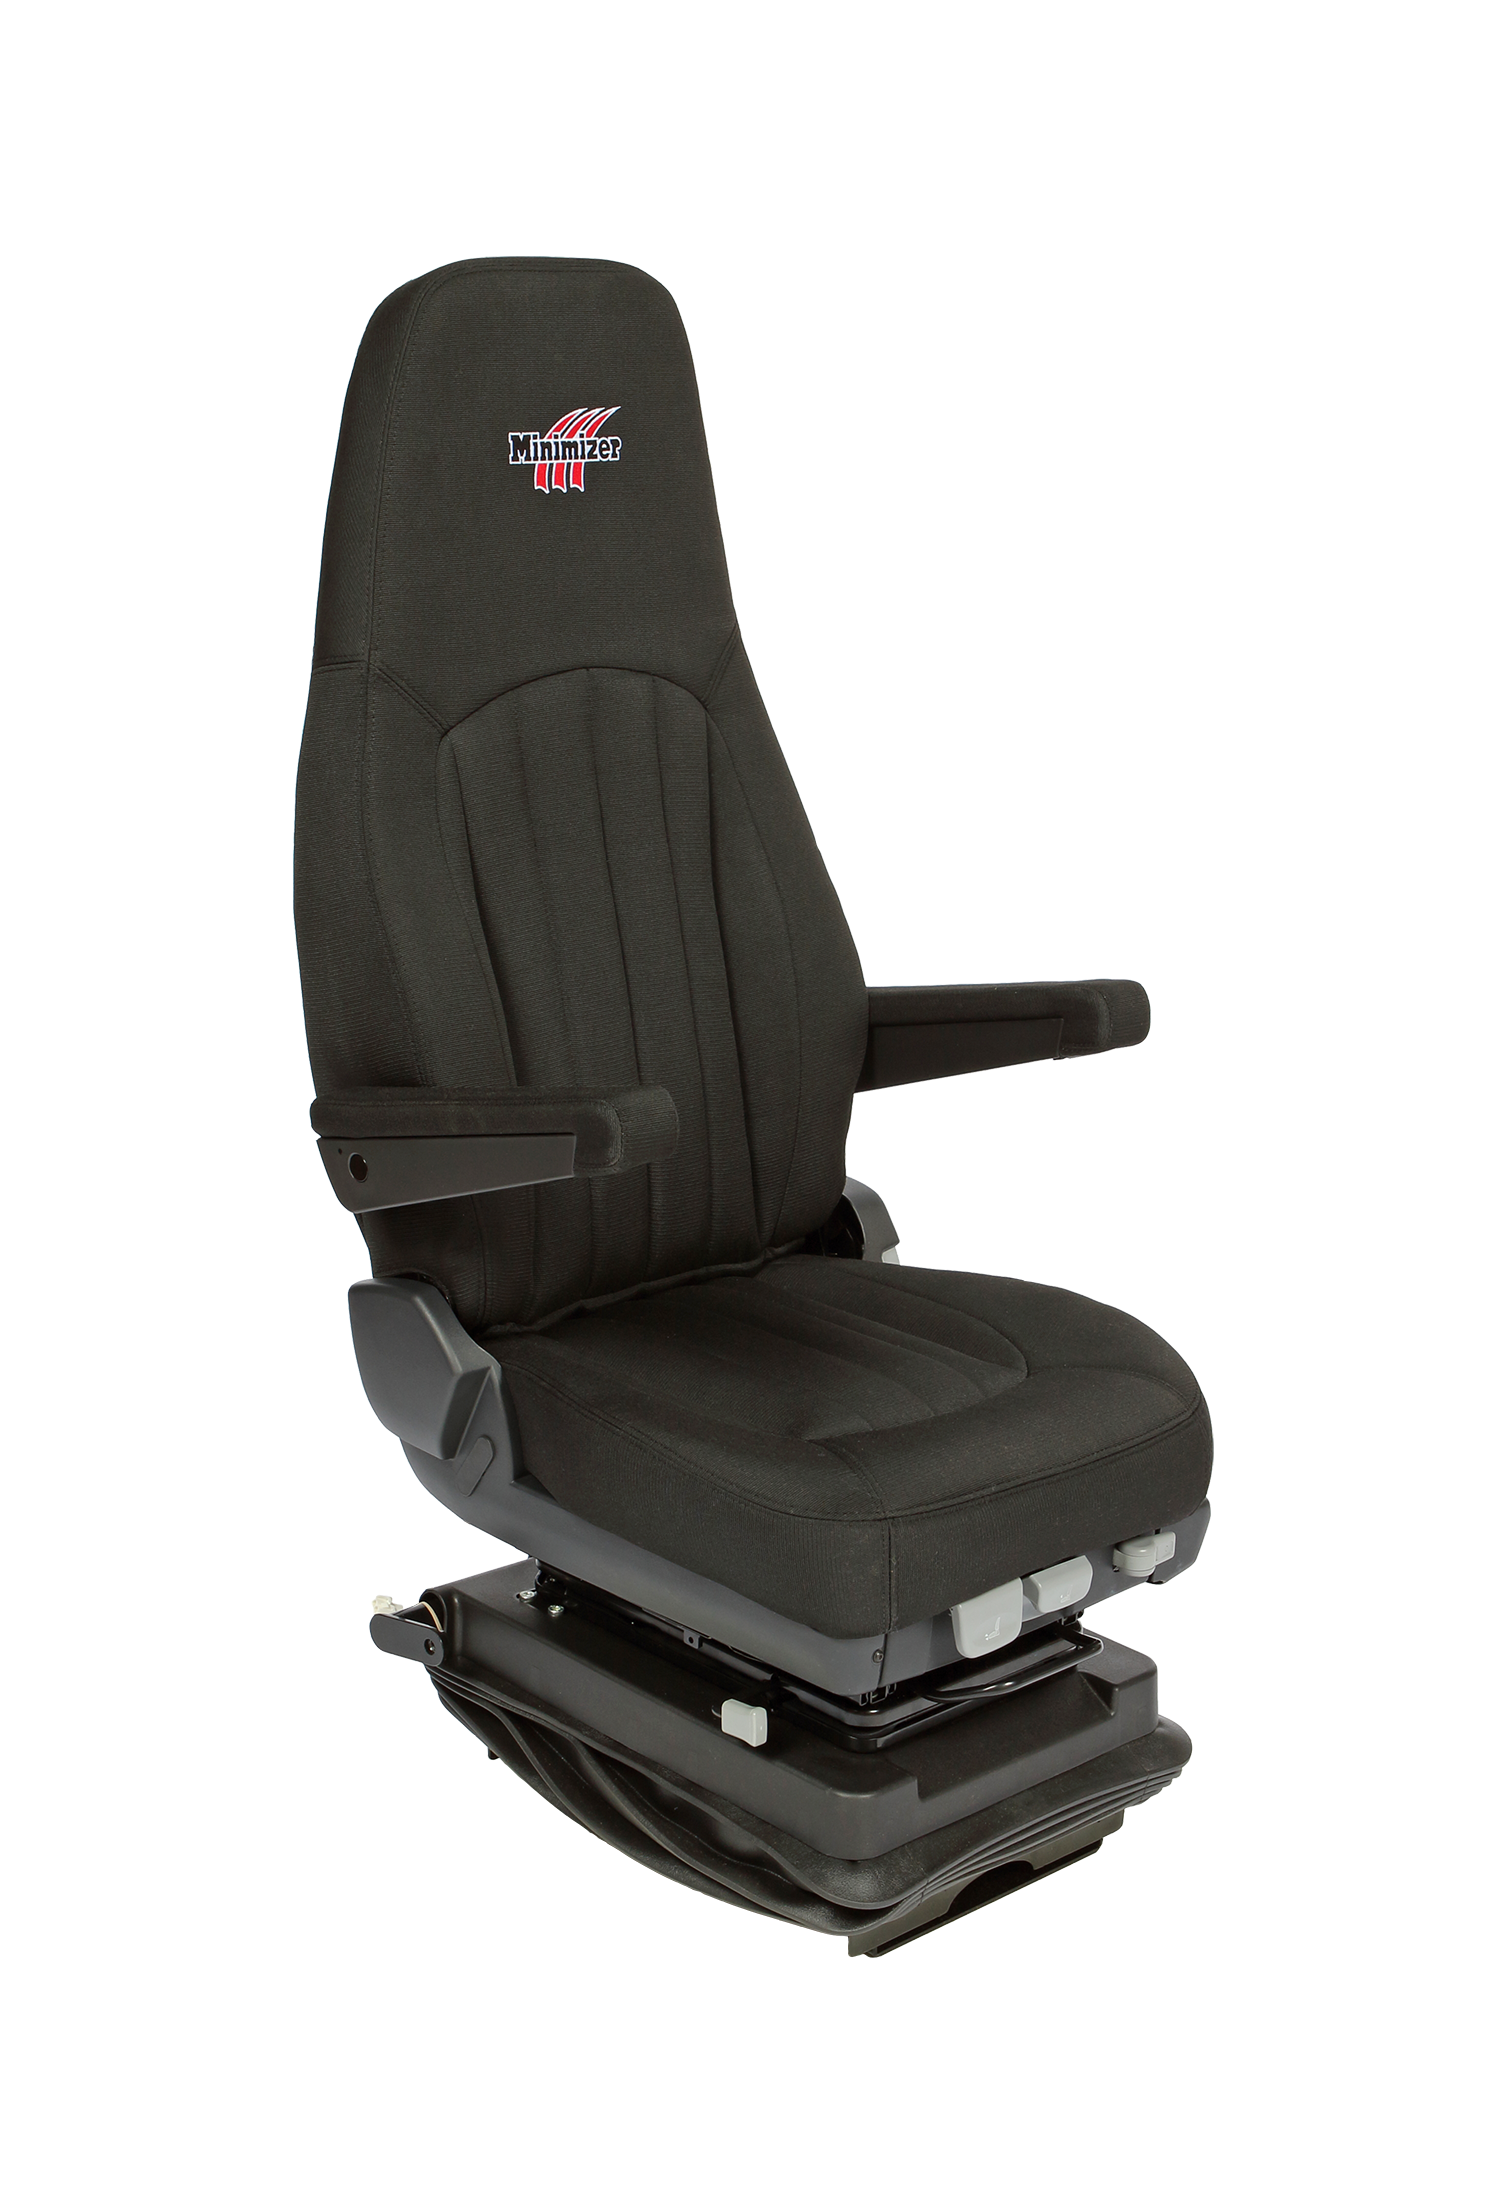 Minimizer Heavy Duty Semi Truck Seats - Premium Cloth with Heat and Cool